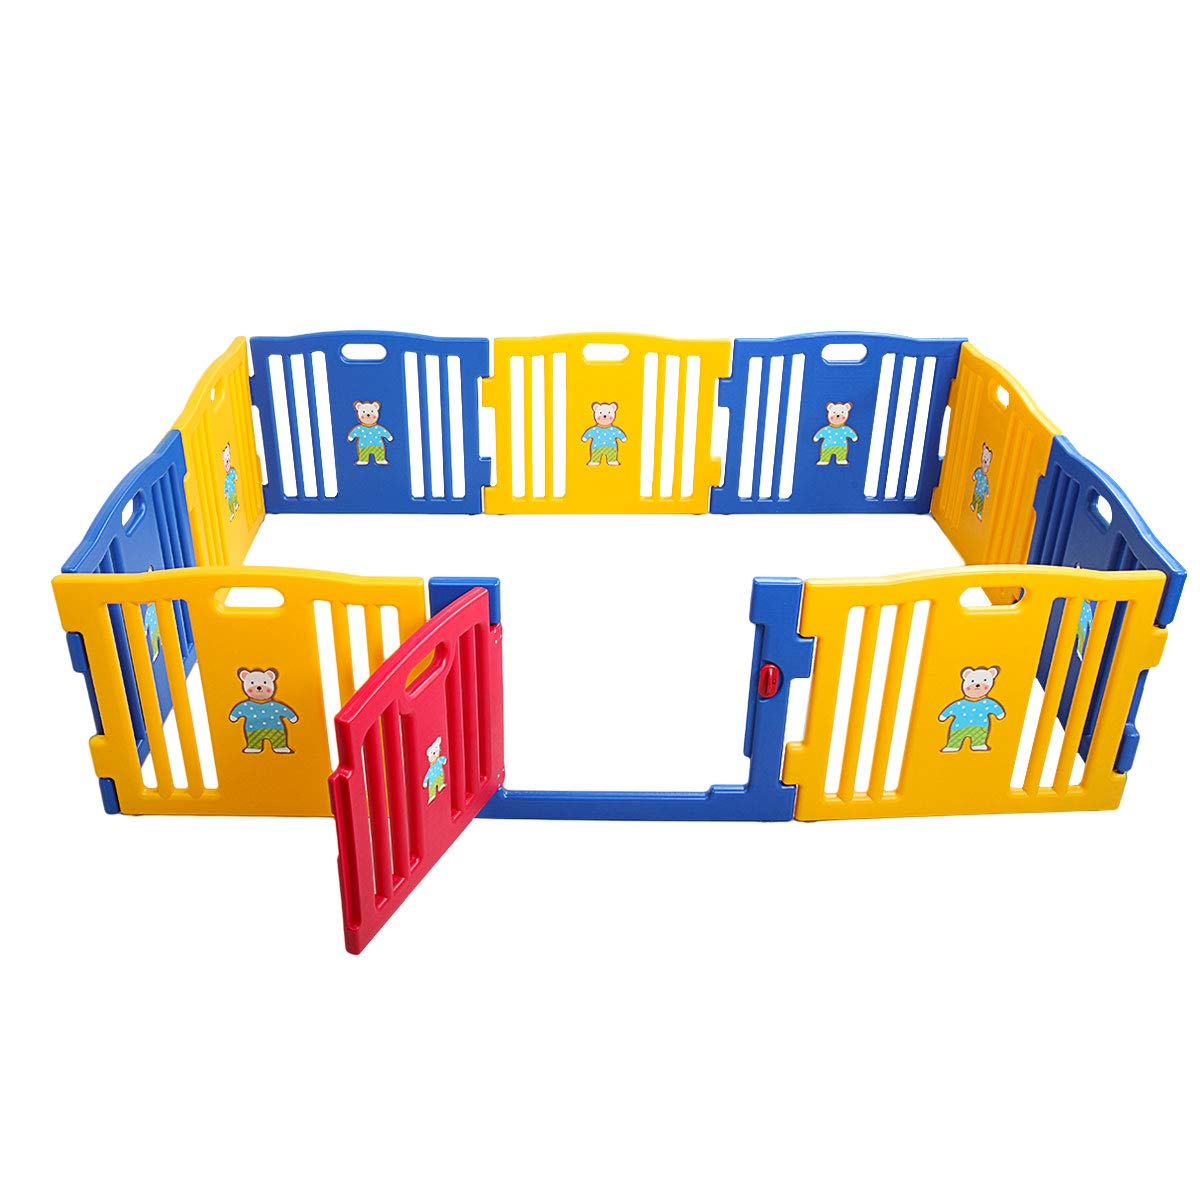 Sandinrayli Baby Playpen 10 Panel Foldable Kids Safety Play Center Fence Indoor Outdoor